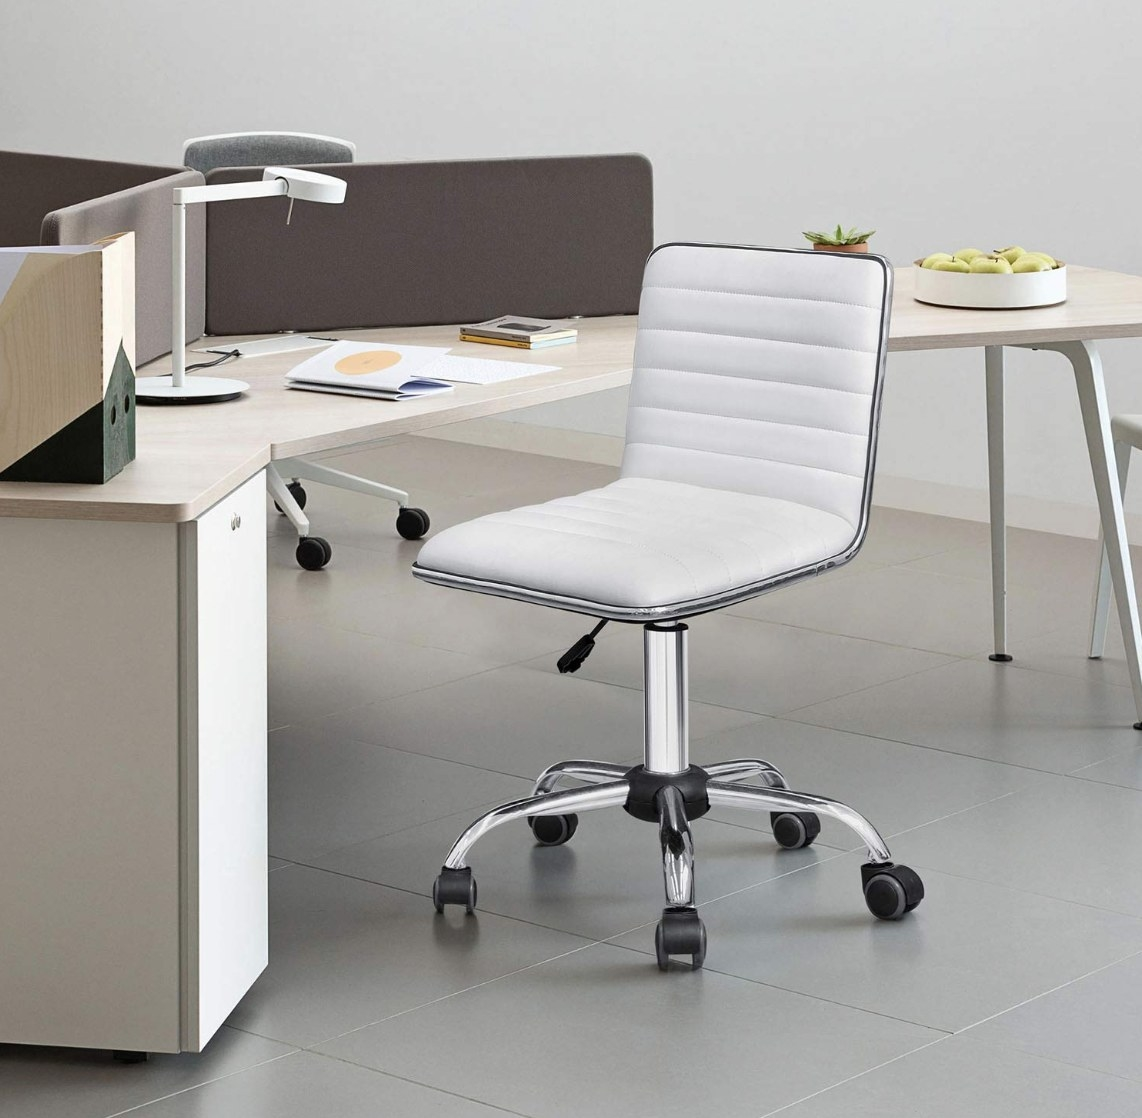 The rolling office chair in white